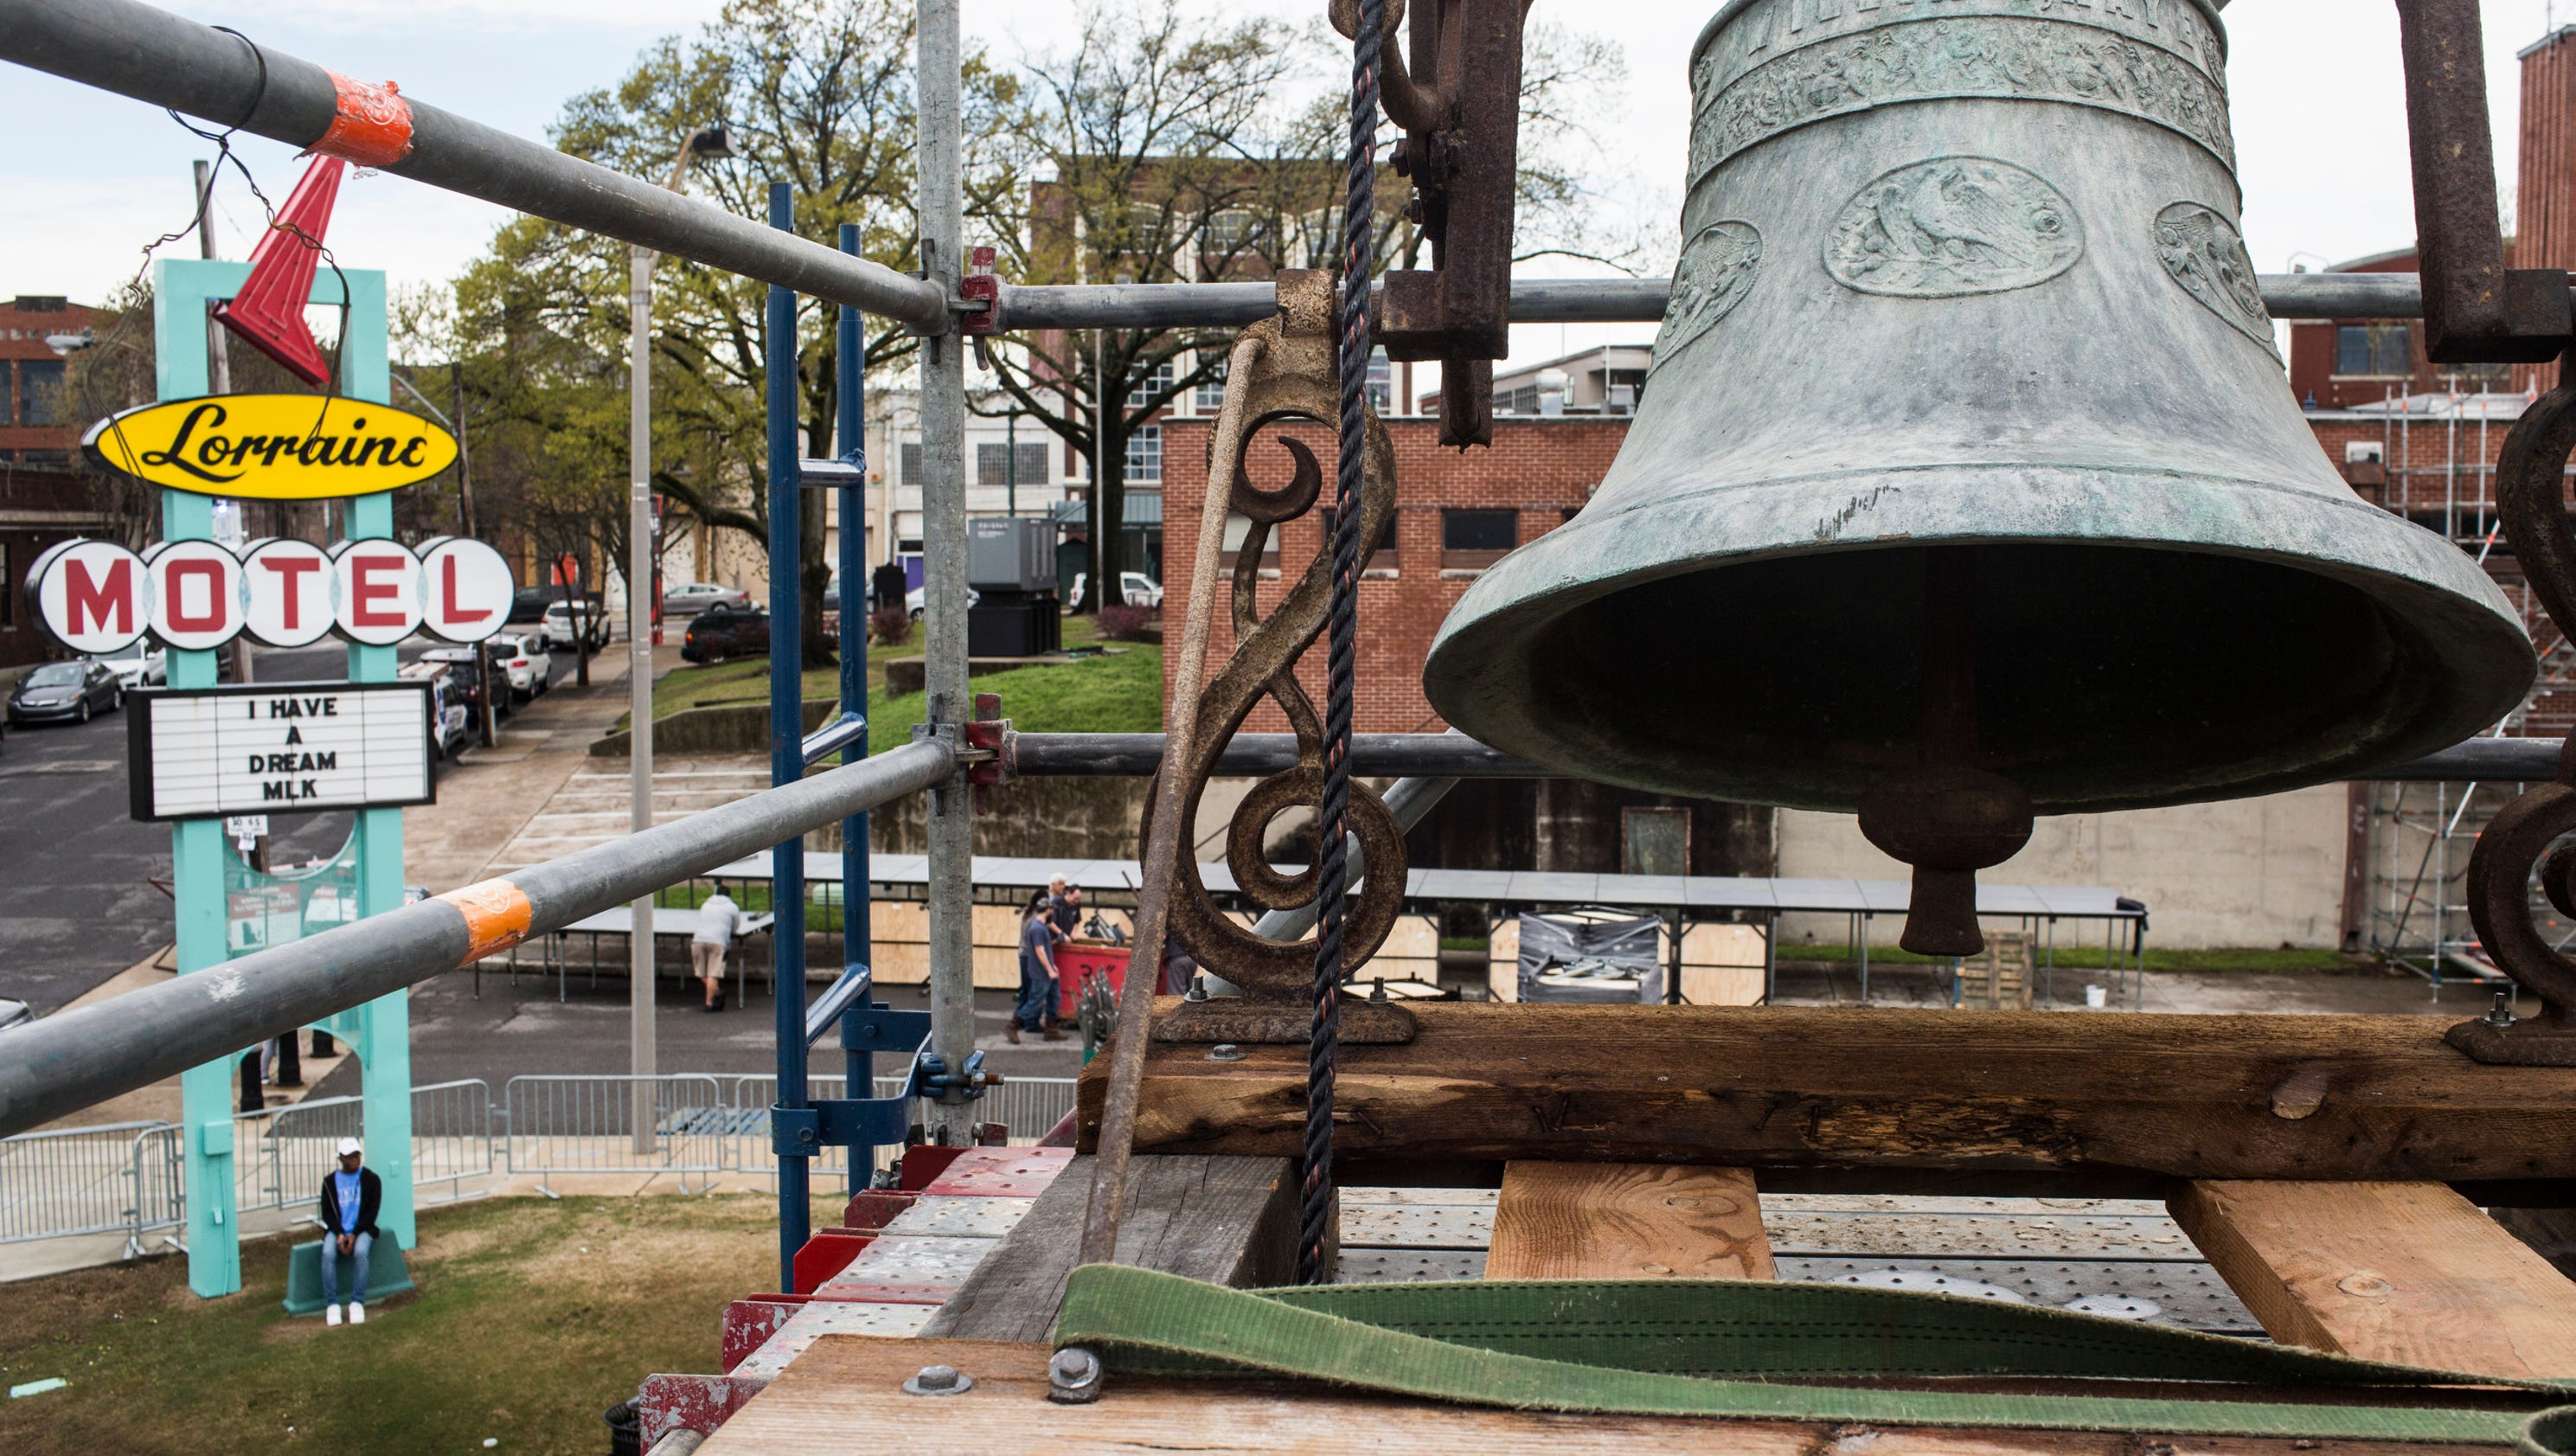 Martin luther king historic memphis church bell set to ring again - Homes in old churches ...